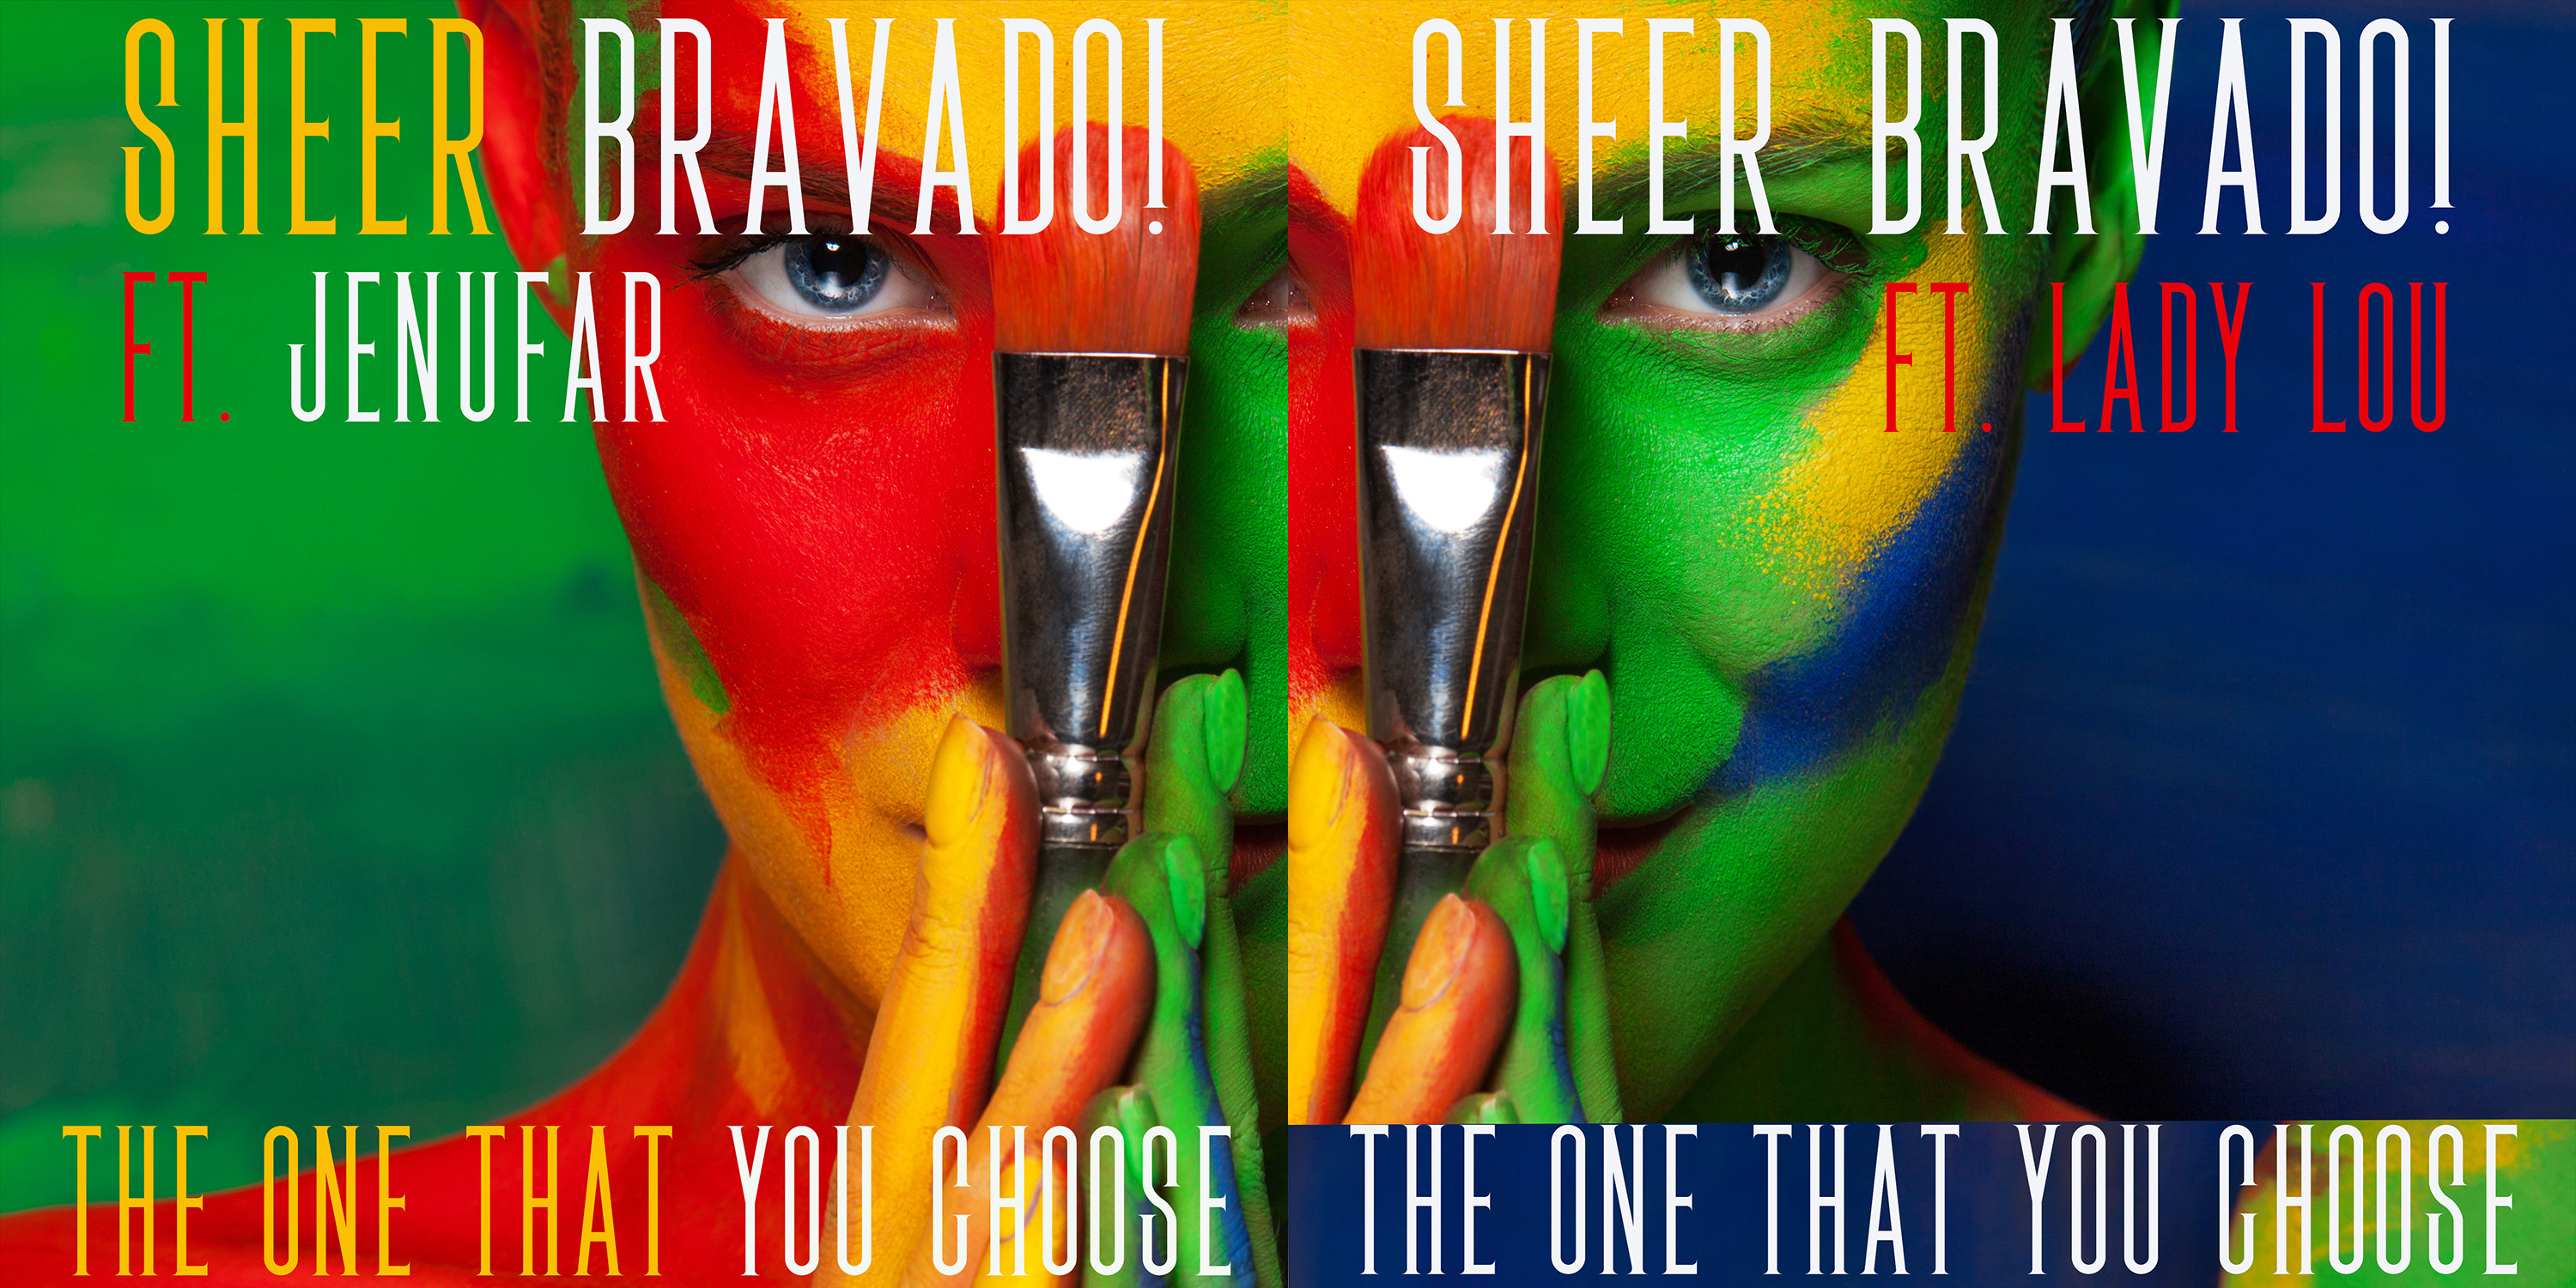 sheer_bravado_choose_advert